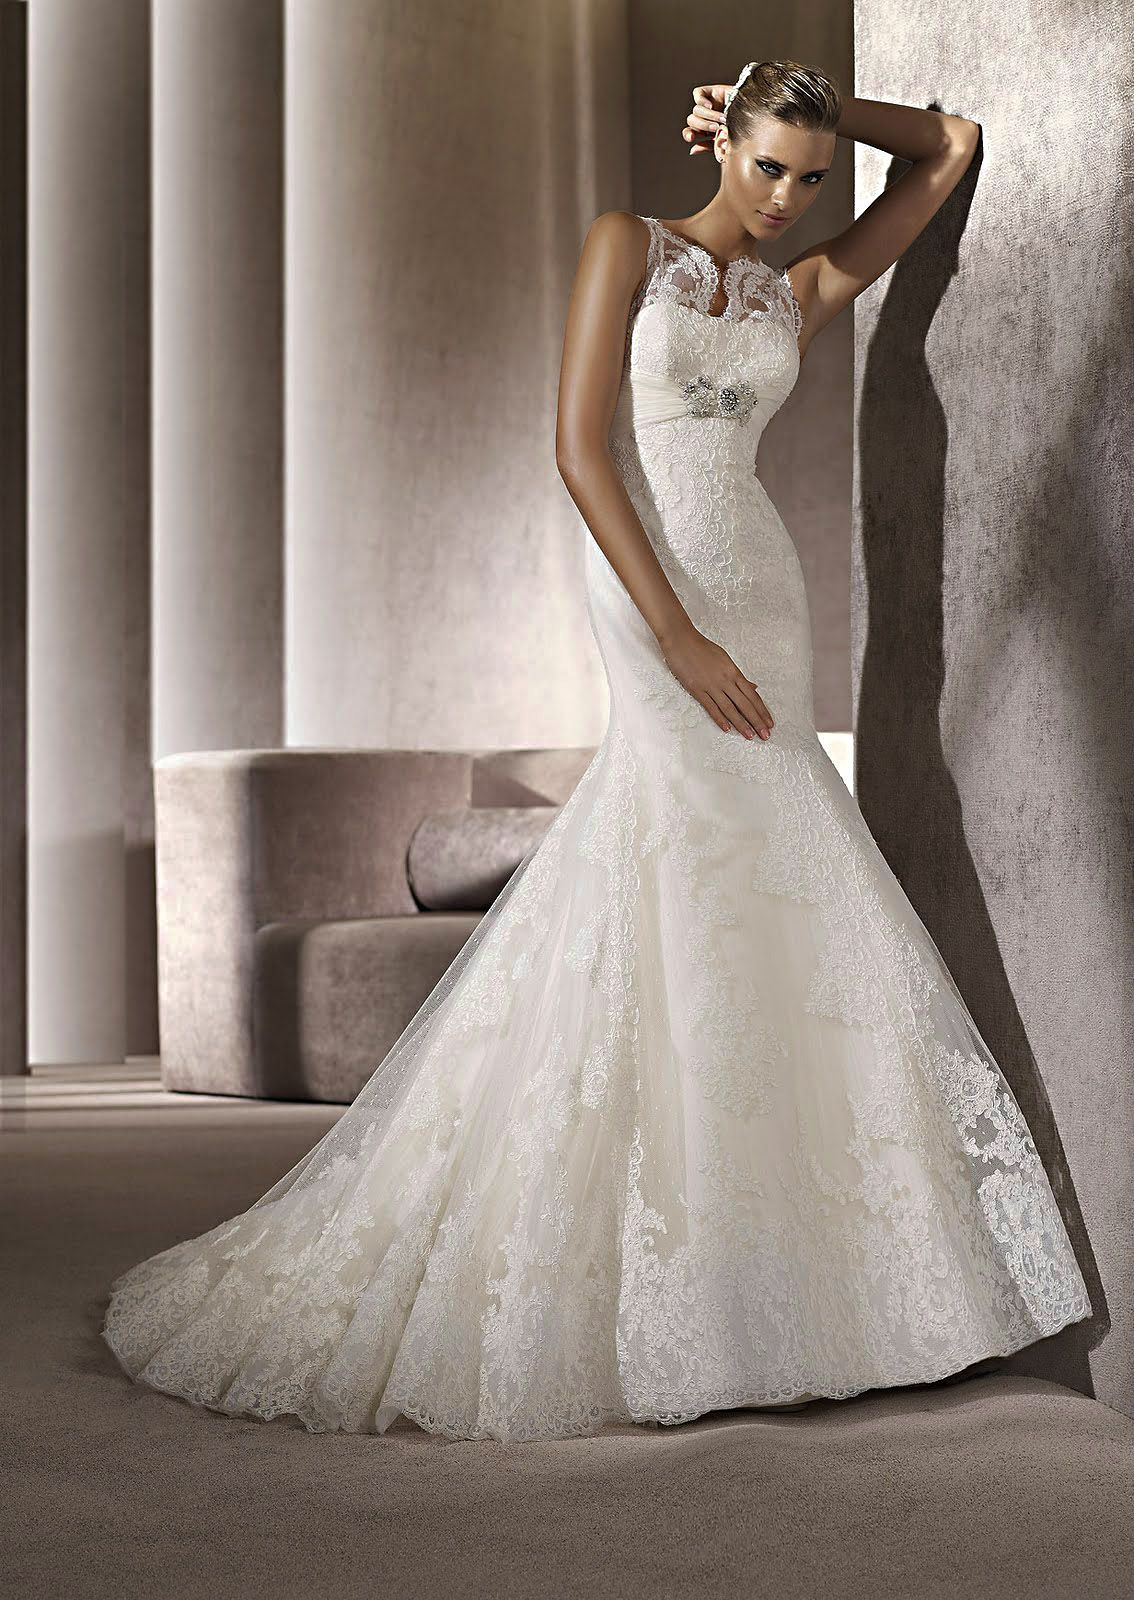 Stunning wedding fashion image Touch Of Class Bridal offers the latest wedding dress alterations